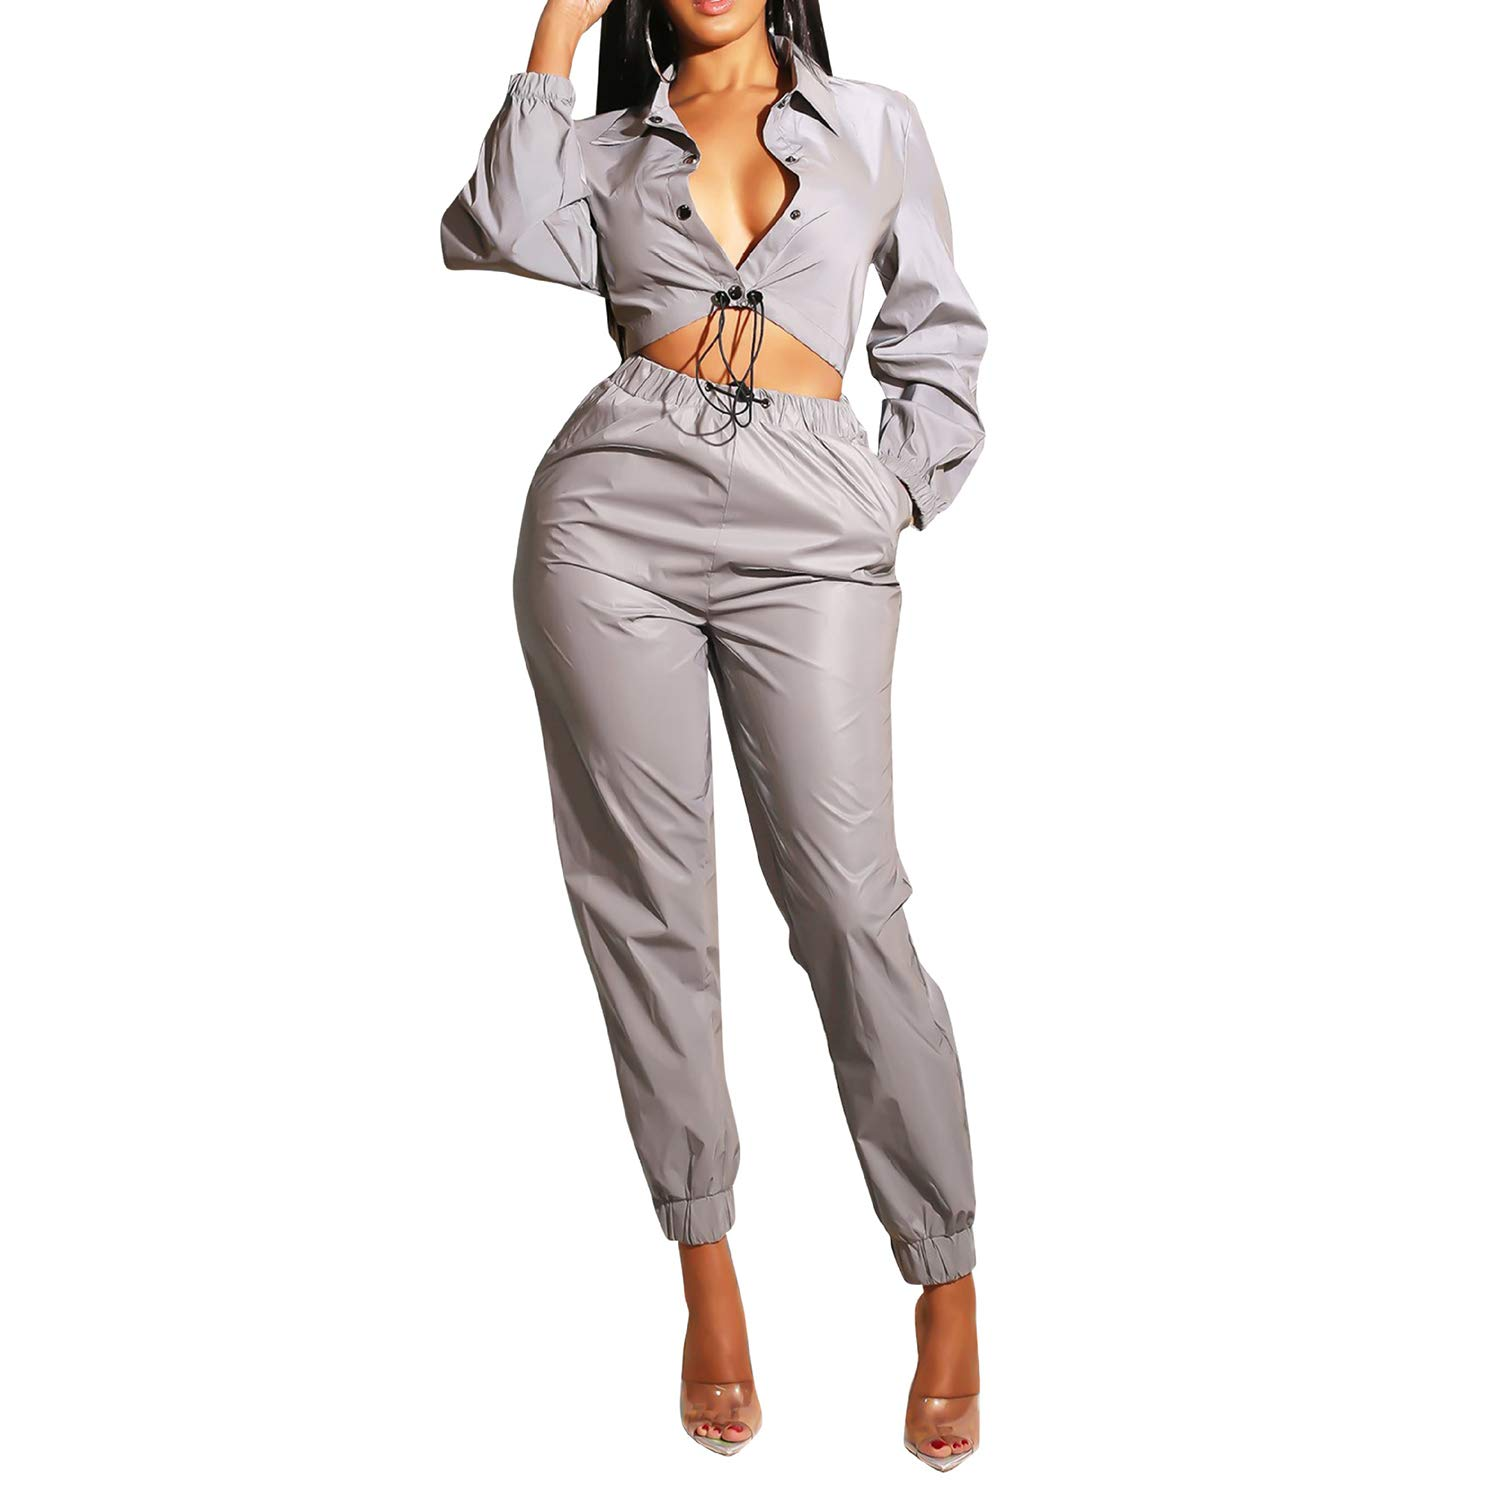 067dff2adf Amazon.com  Women 2 Piece Outfits Tracksuit Buttons Reflective Jacket  Bodycon Jumpsuits Set Clubwear  Clothing